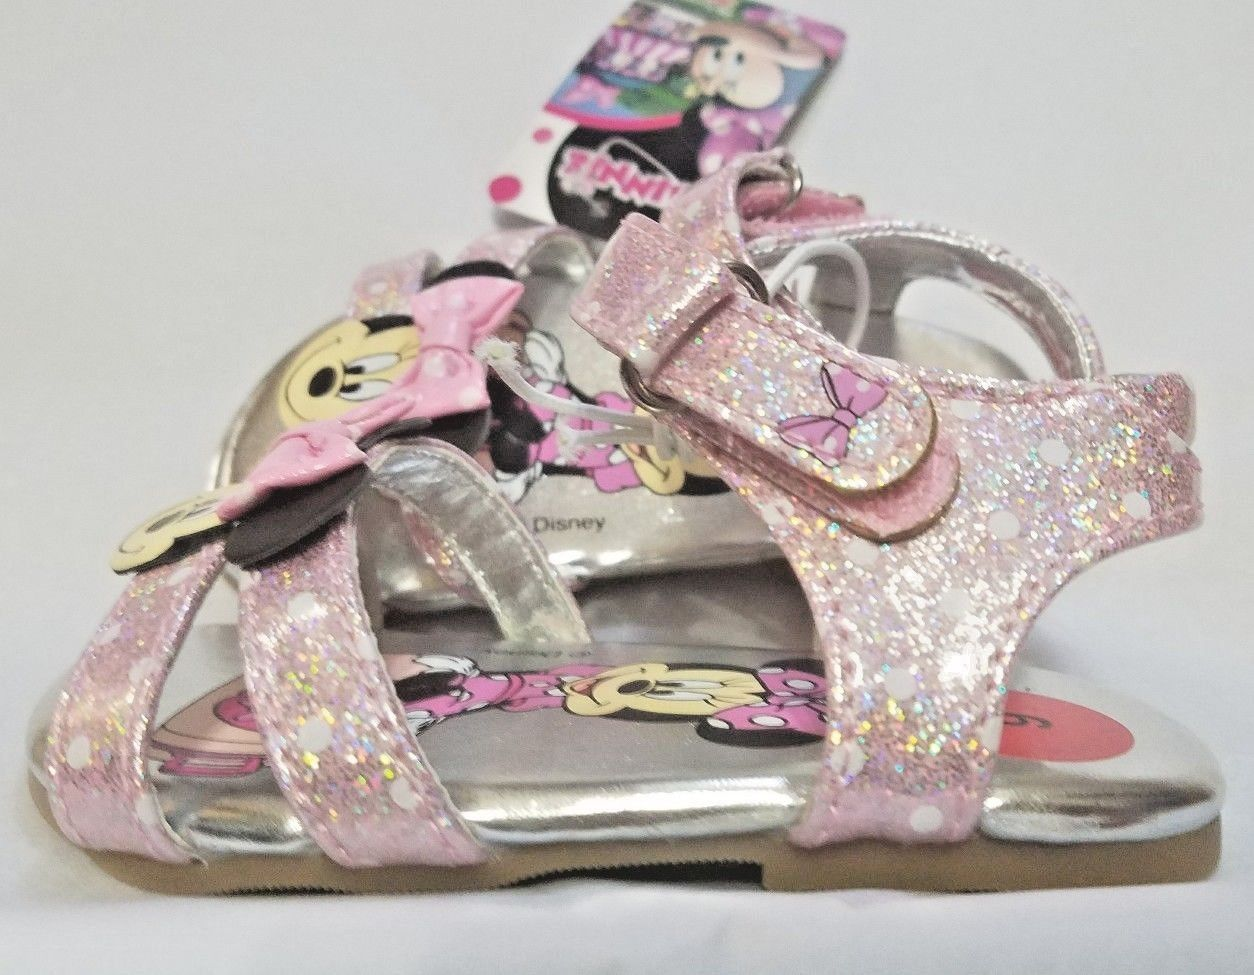 NEW NWT Baby or Toddler Disney Minnie Mouse Sandals Size 6 7 9 or 10